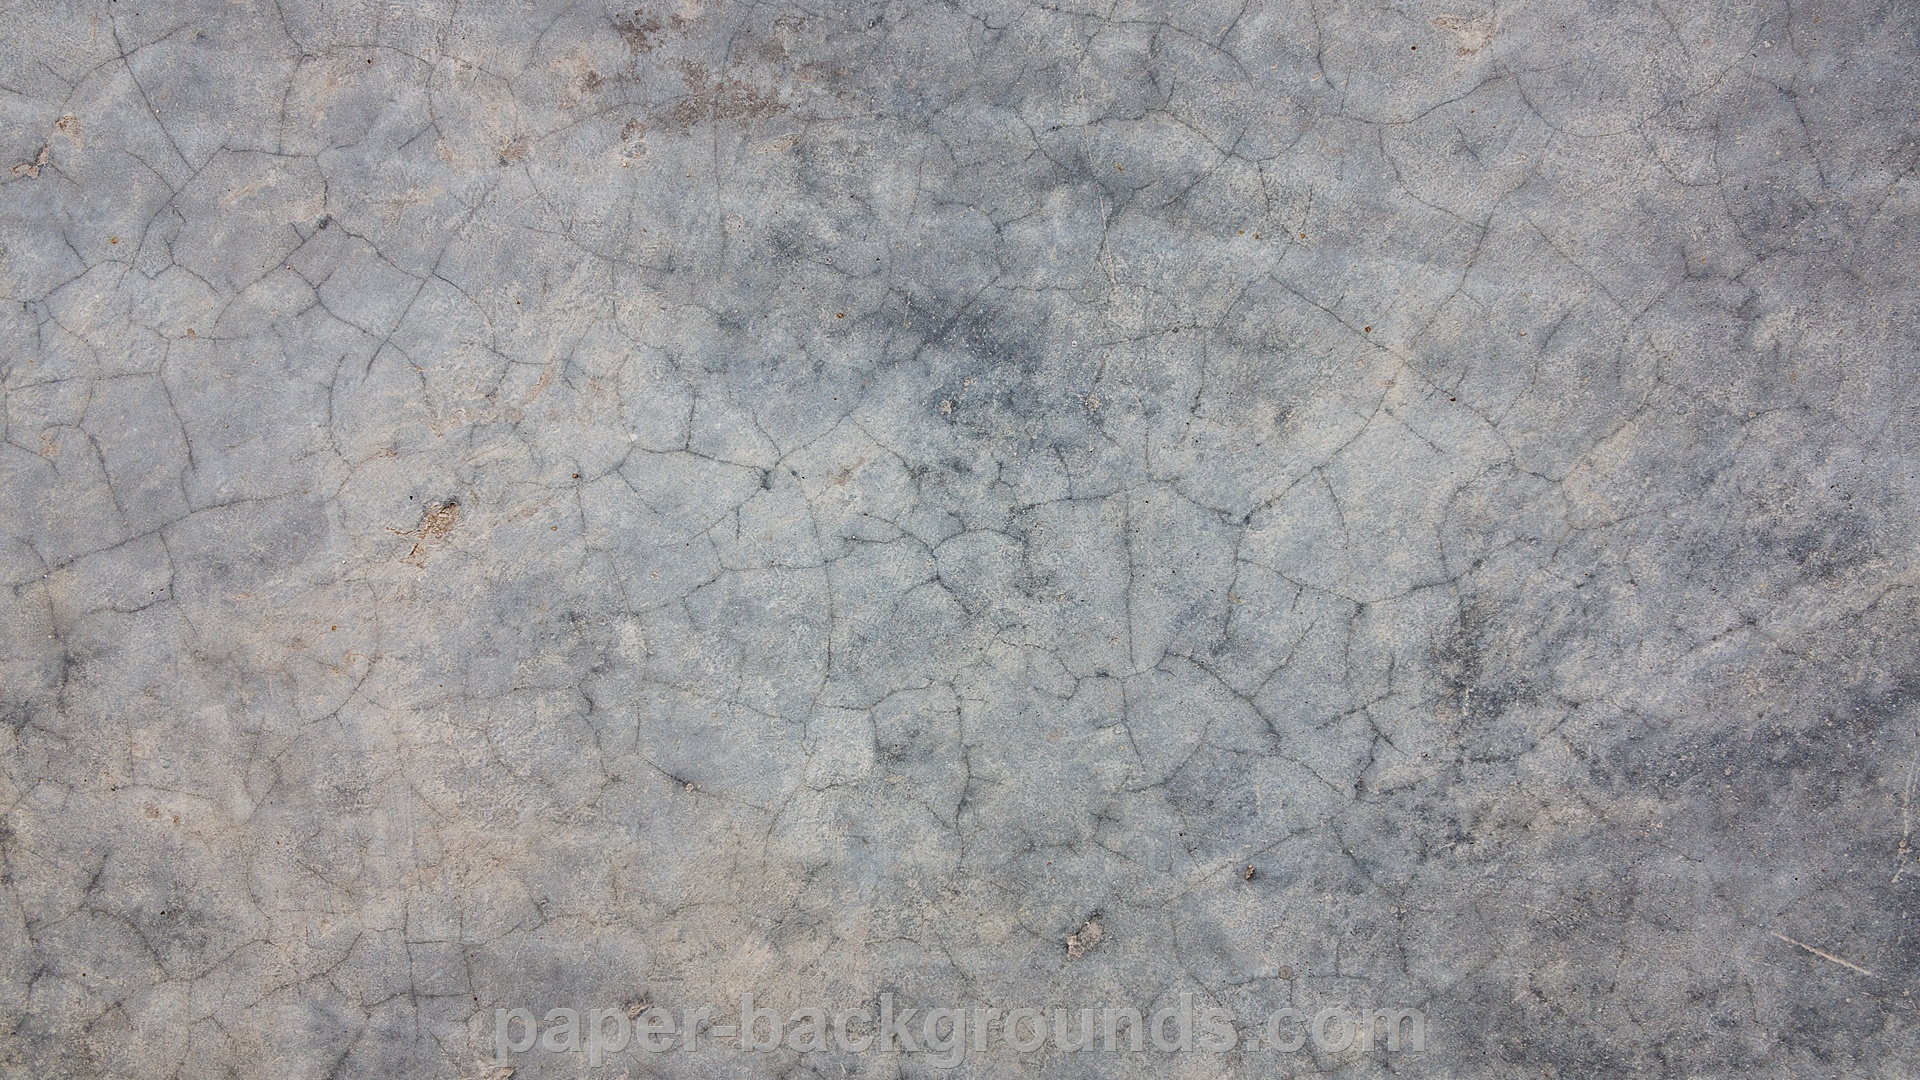 Cracked Concrete Floor Texture HD